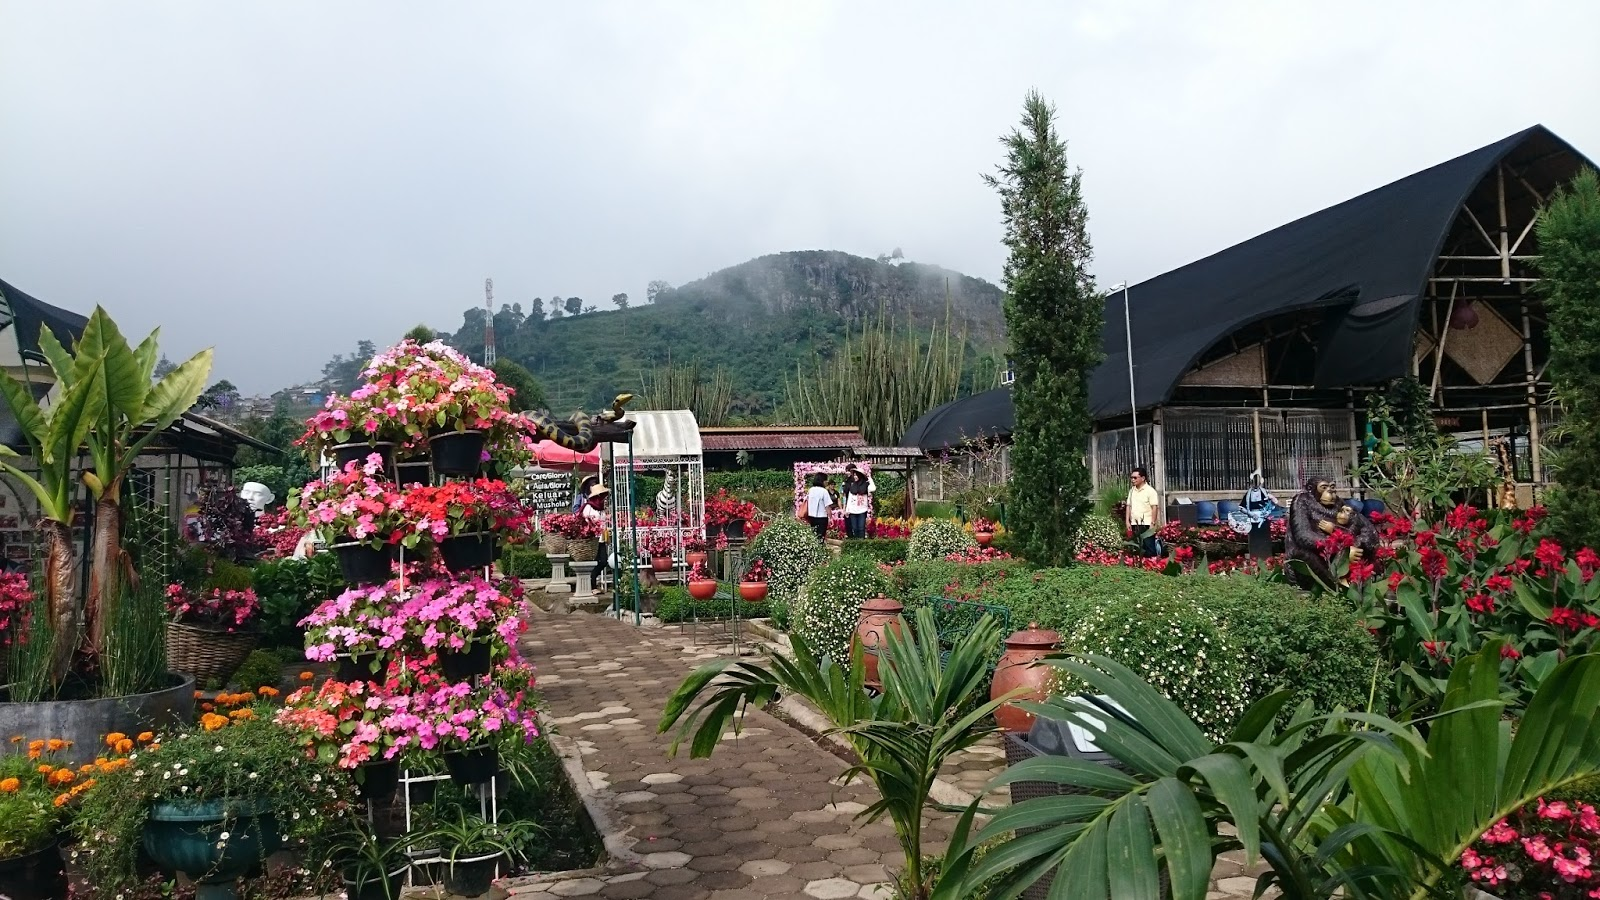 begonia park is romantic place in java